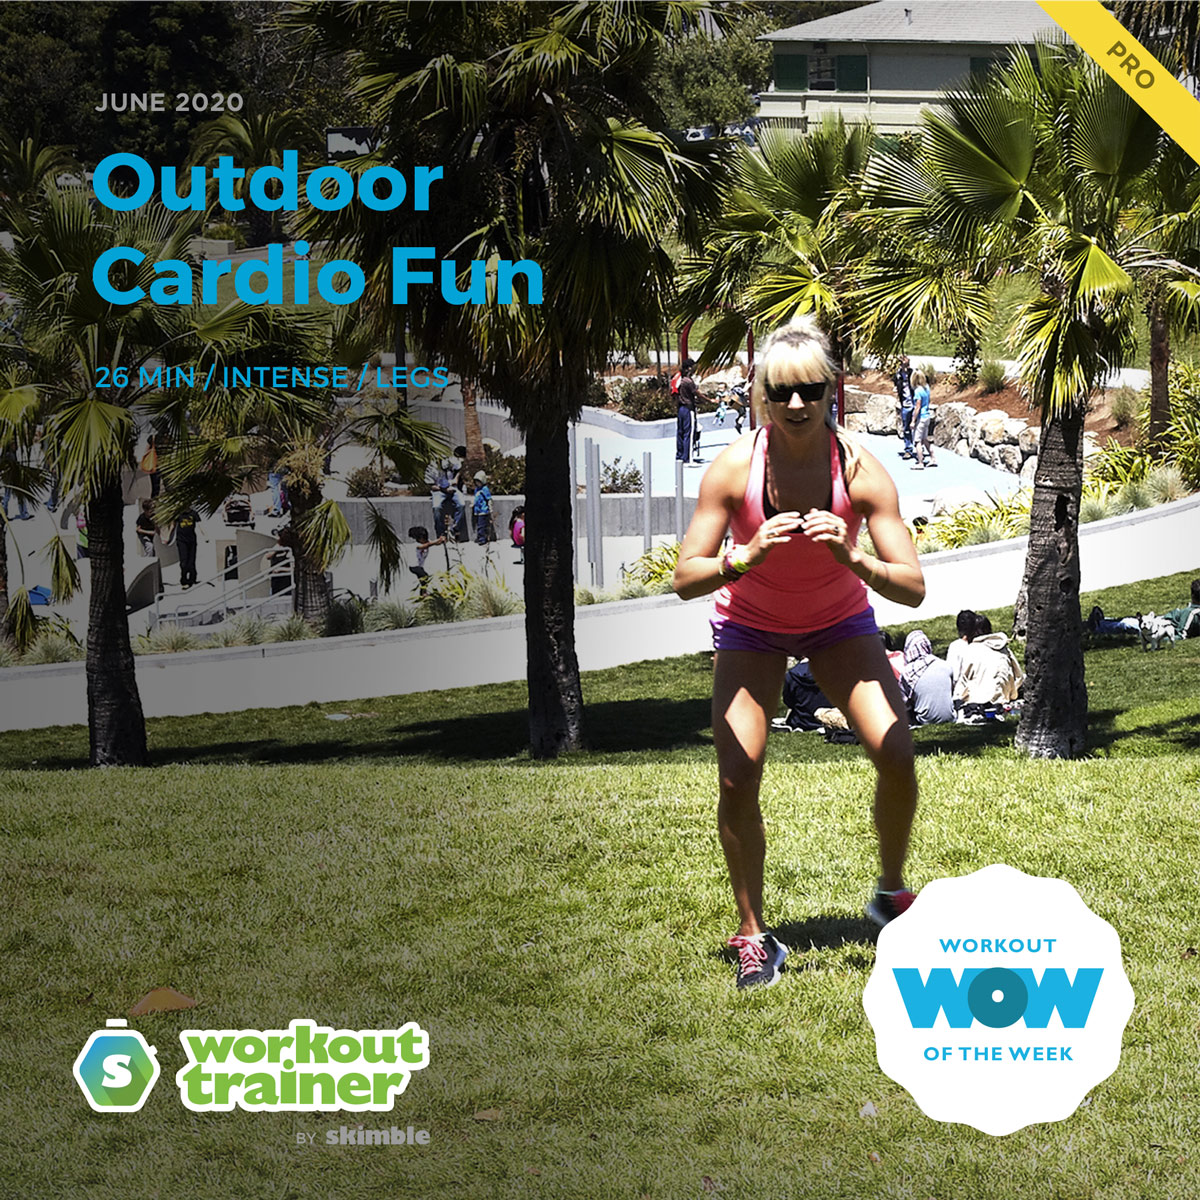 Workout Trainer by Skimble: Pro Workout of the Week: Outdoor Cardio Fun